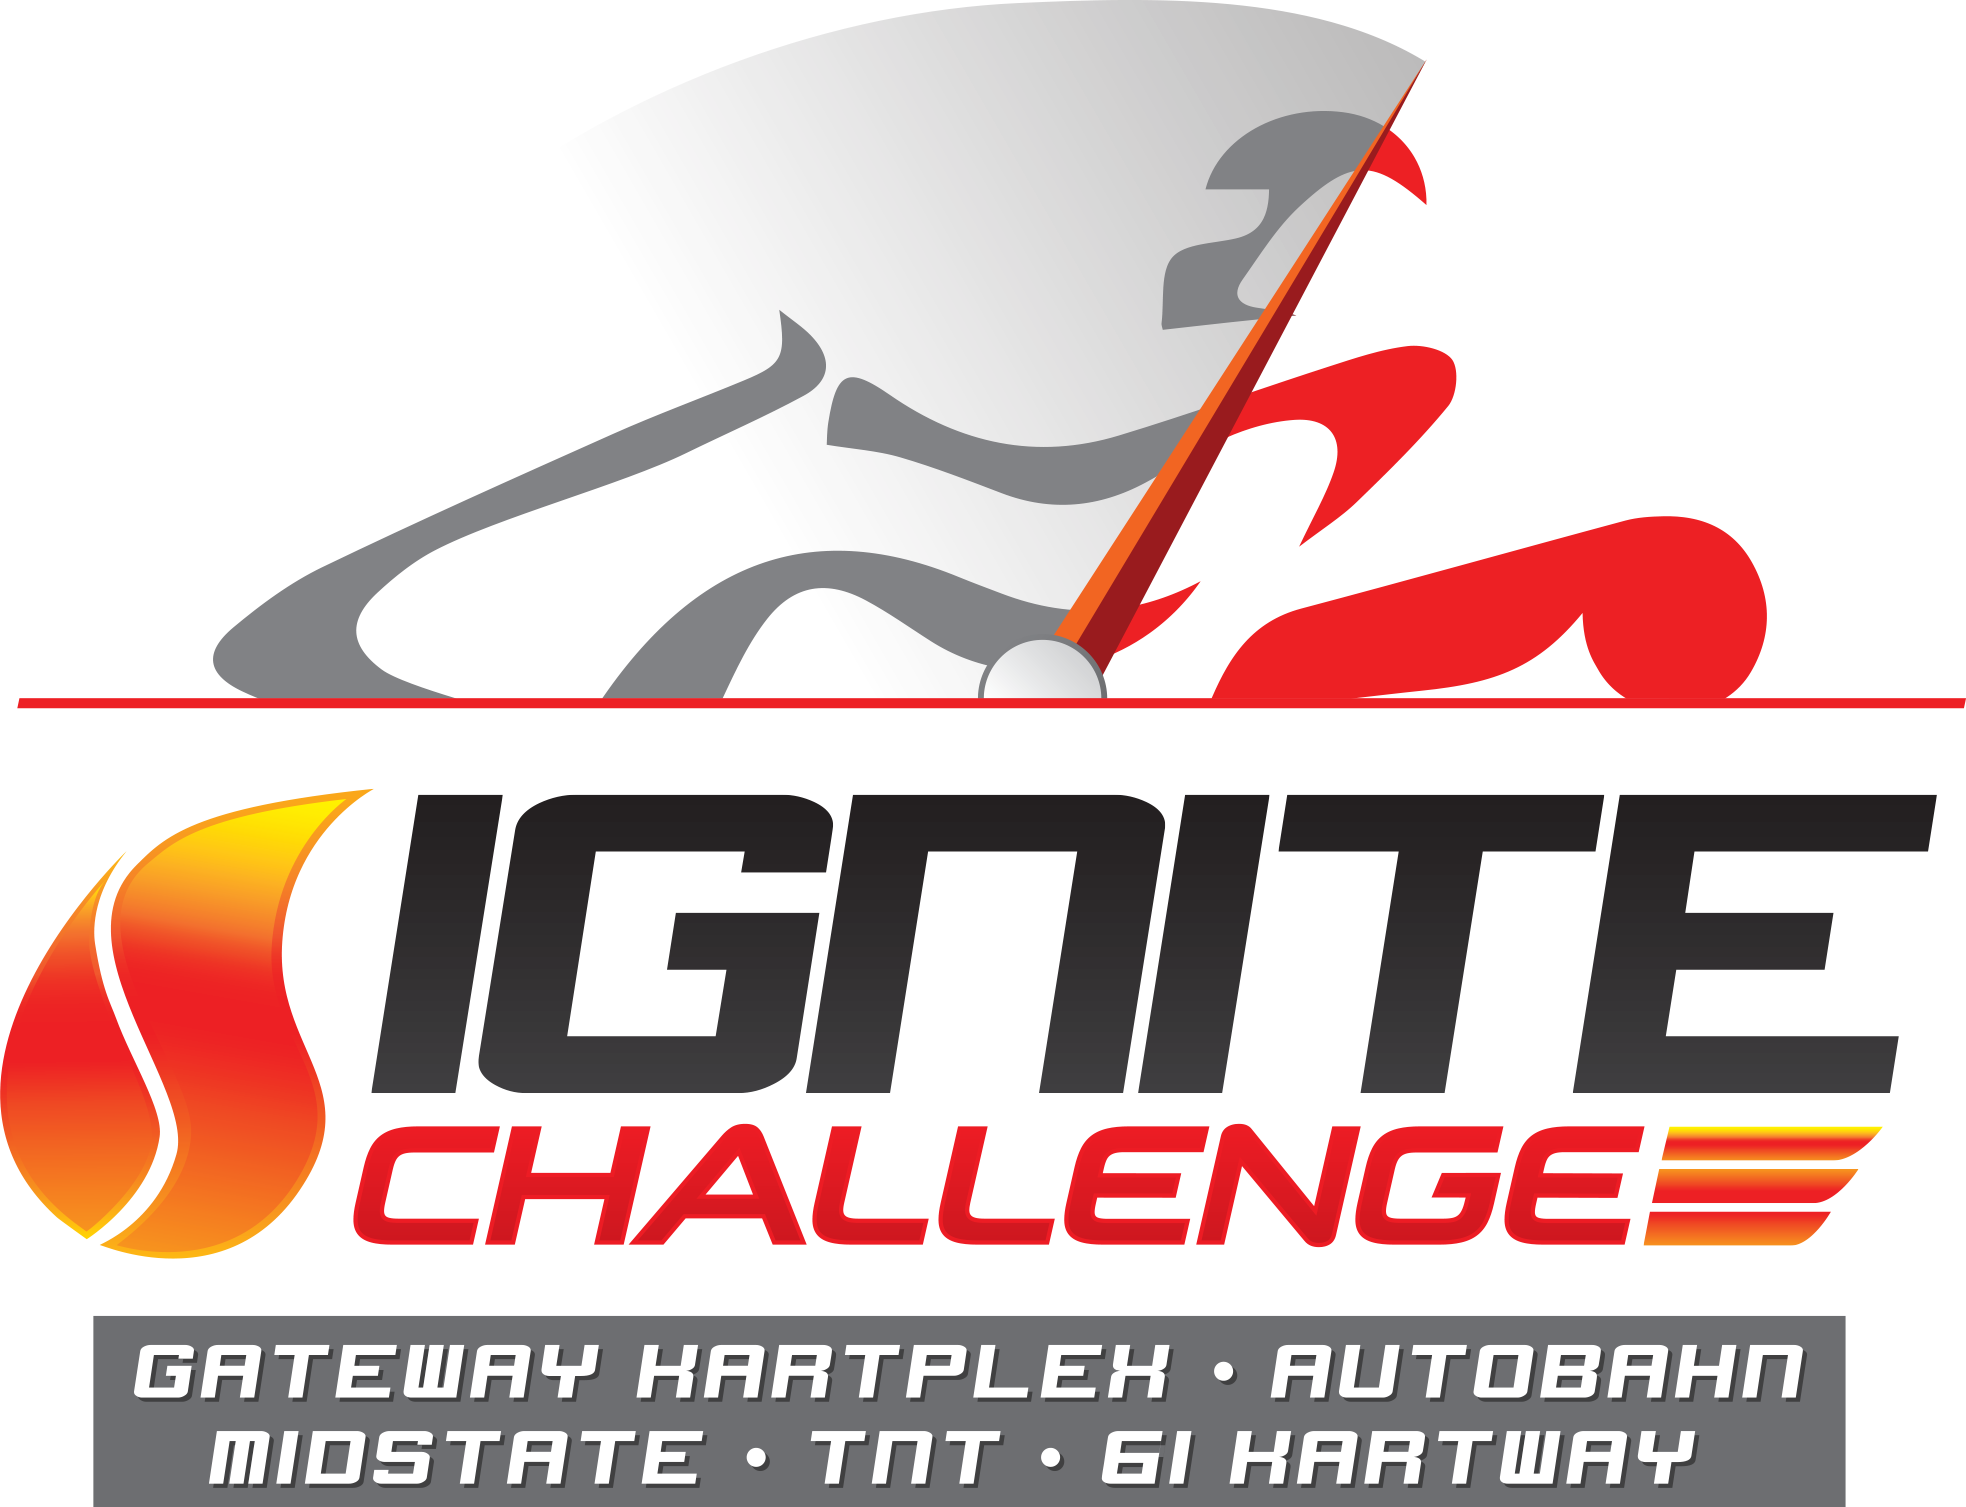 2018 Ignite Challenge Series Registration (Arrive & Drive)